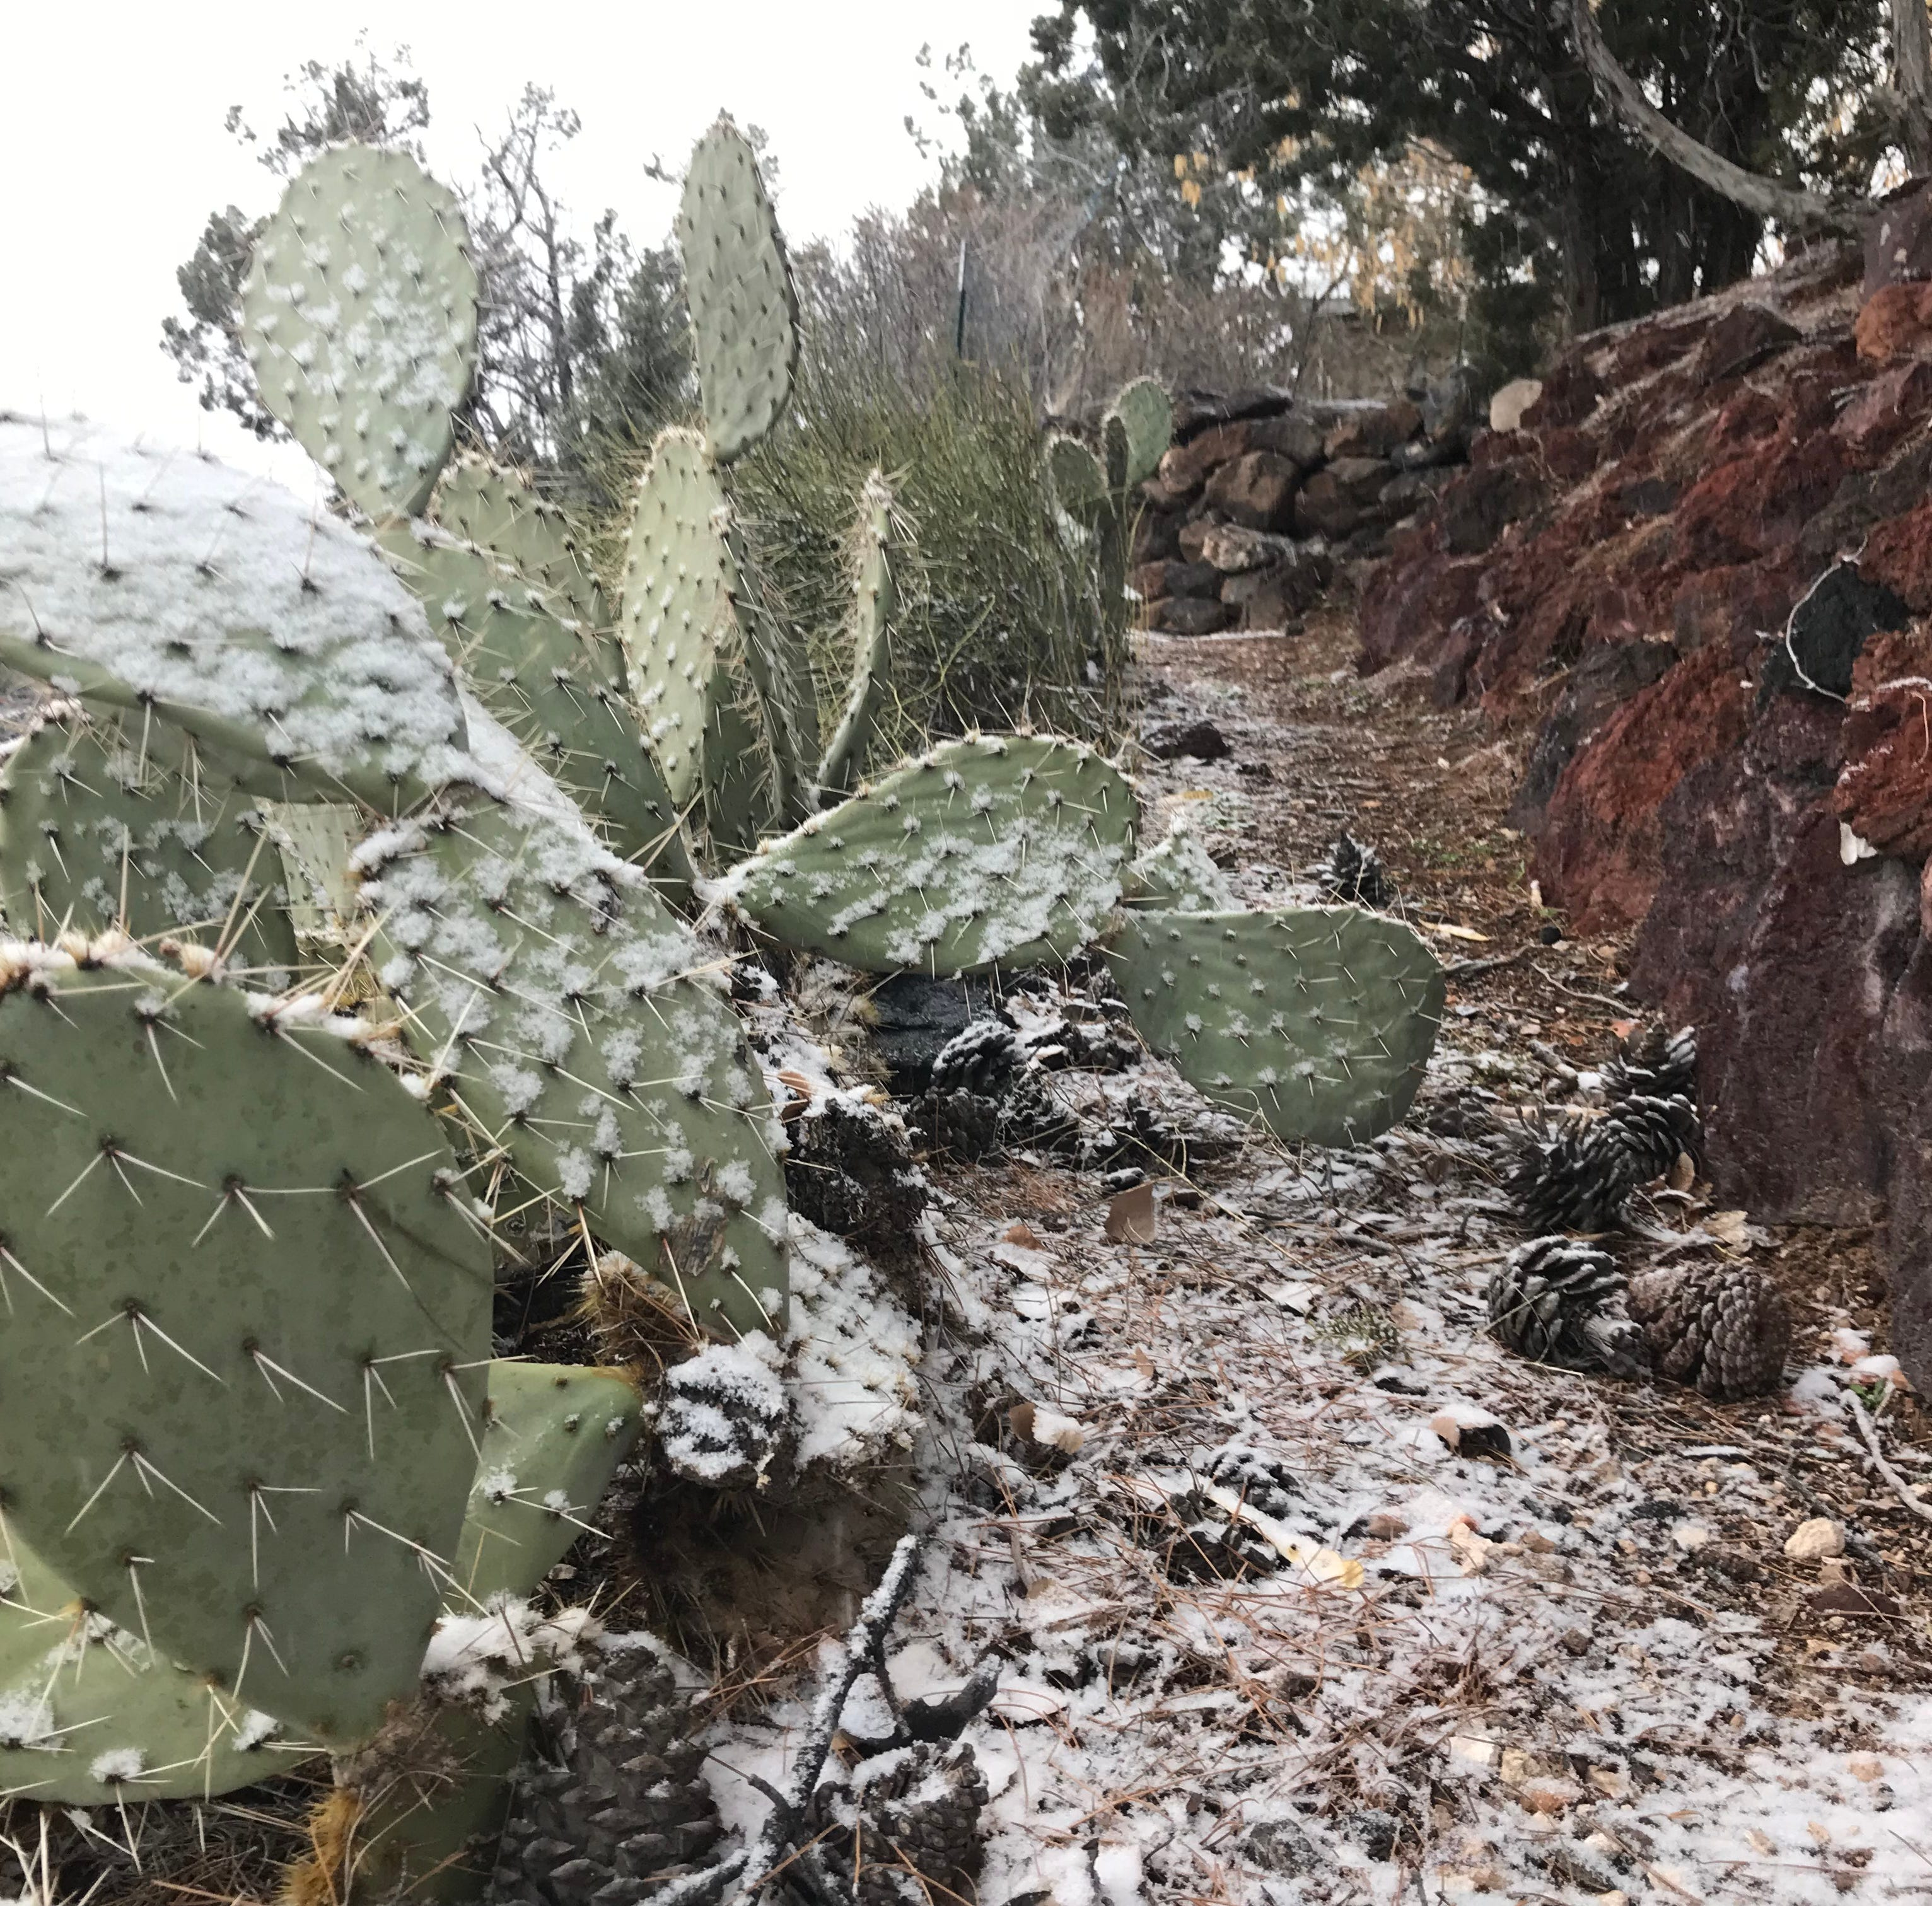 St. George officials warn residents to get ready for snow